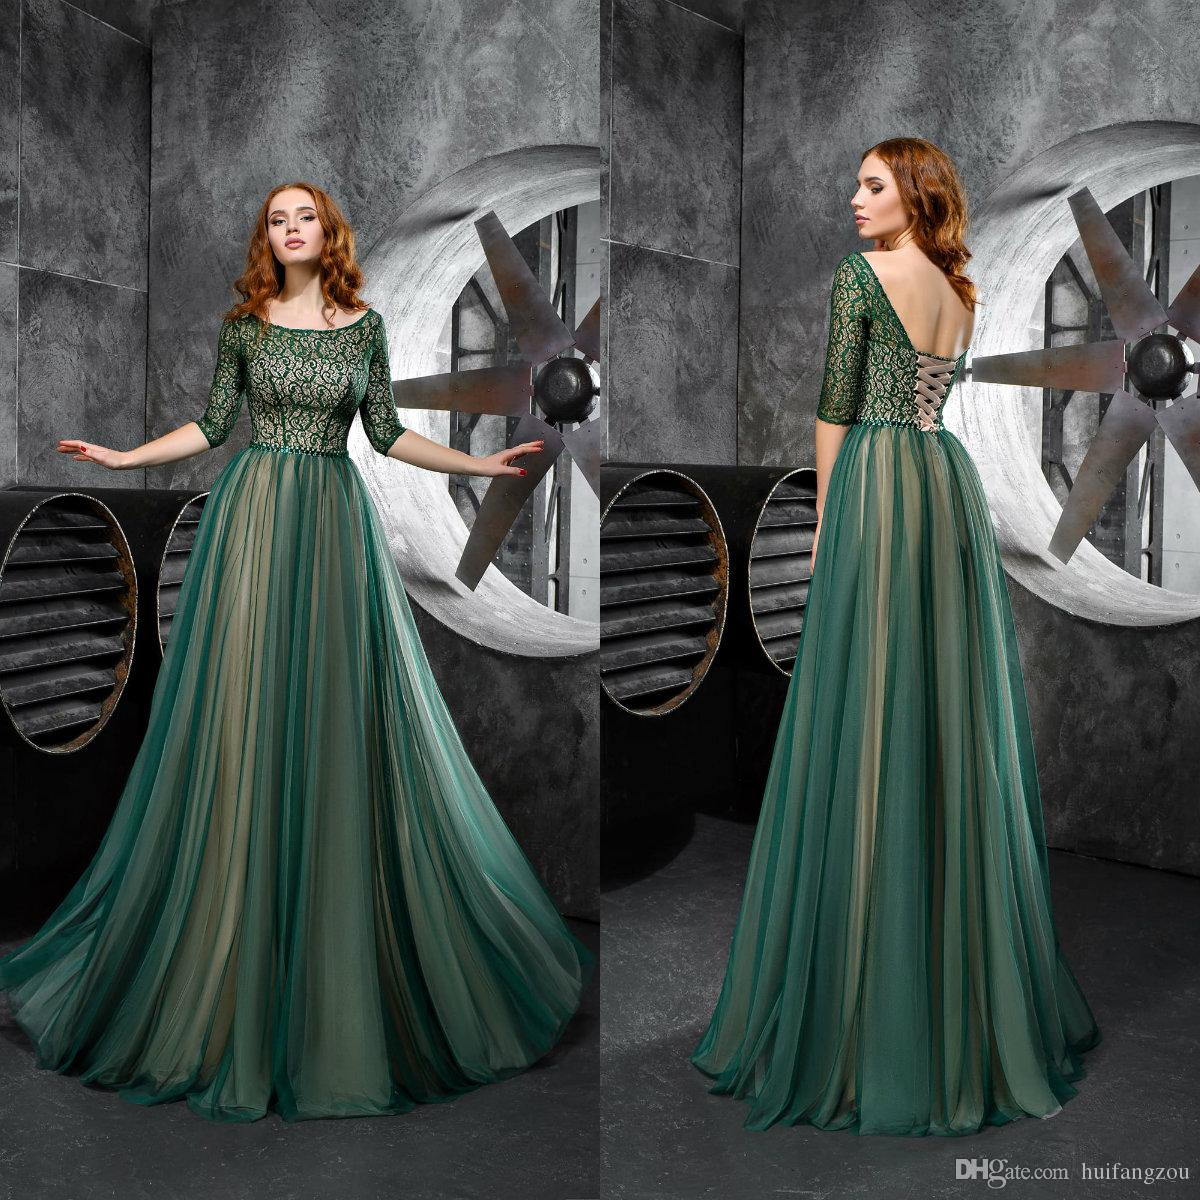 94b5fa2a19 Hunter Green Prom Dresses 2019 Lace Half Sleeve Formal Evening Party Dress  Floor Length Mother Of The Bride Dresses Long Prom Dresses Uk Long Prom  Dresses ...